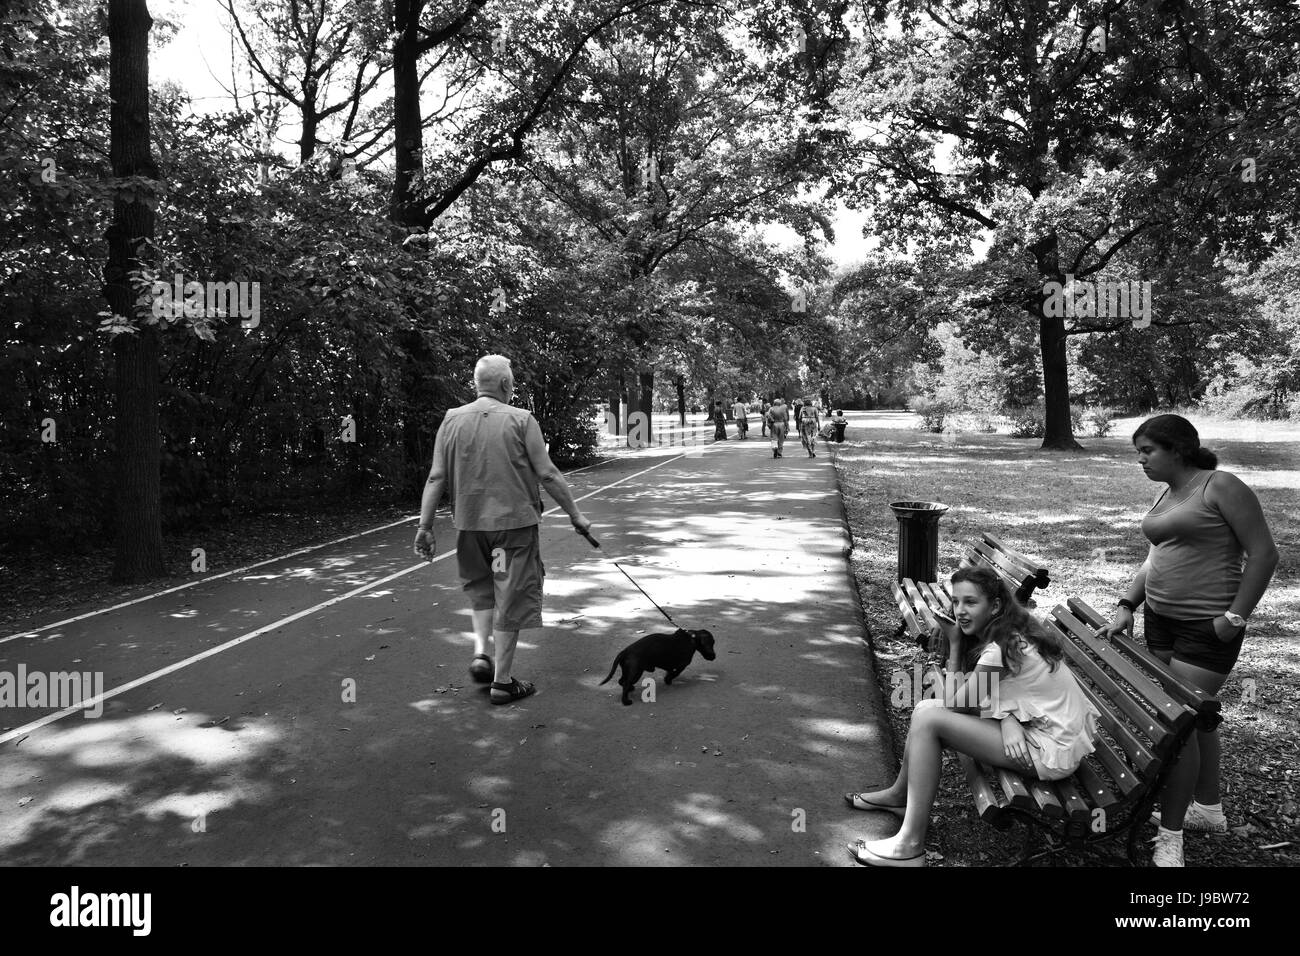 City park in the summer. The man with a small dog goes on avenue. - Stock Image